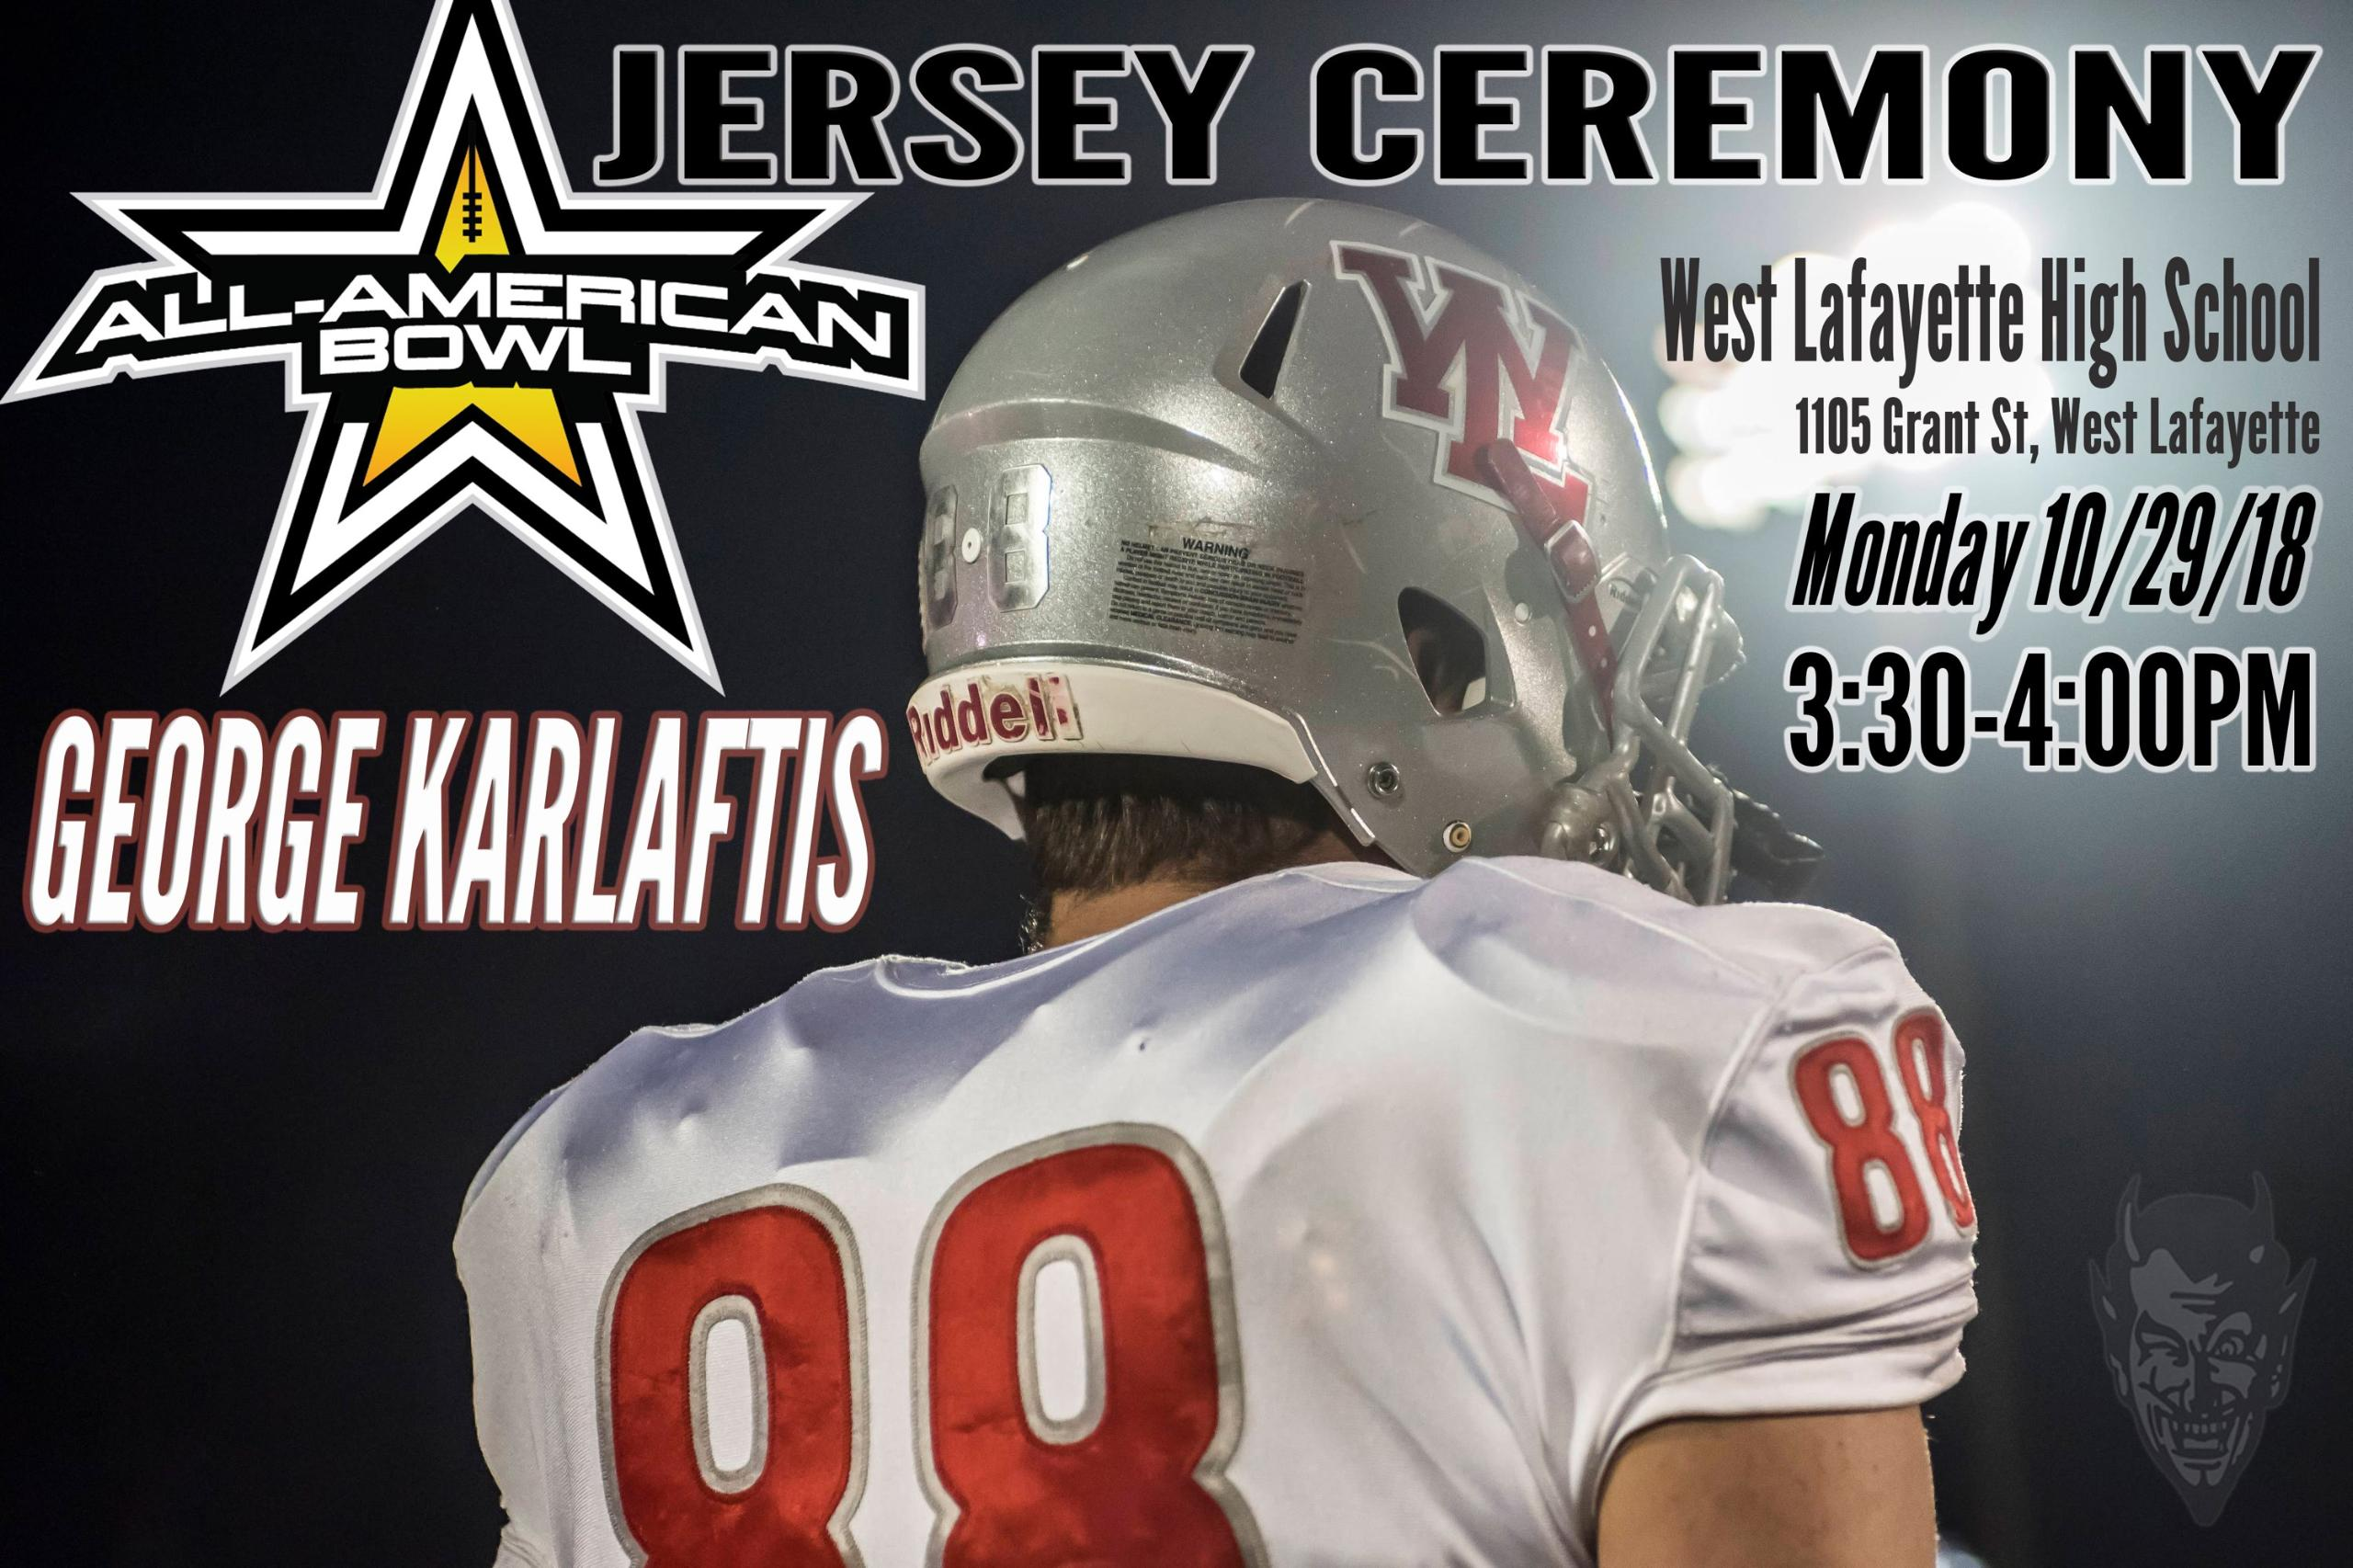 All-American Bowl jersey presentation for George Karlaftis